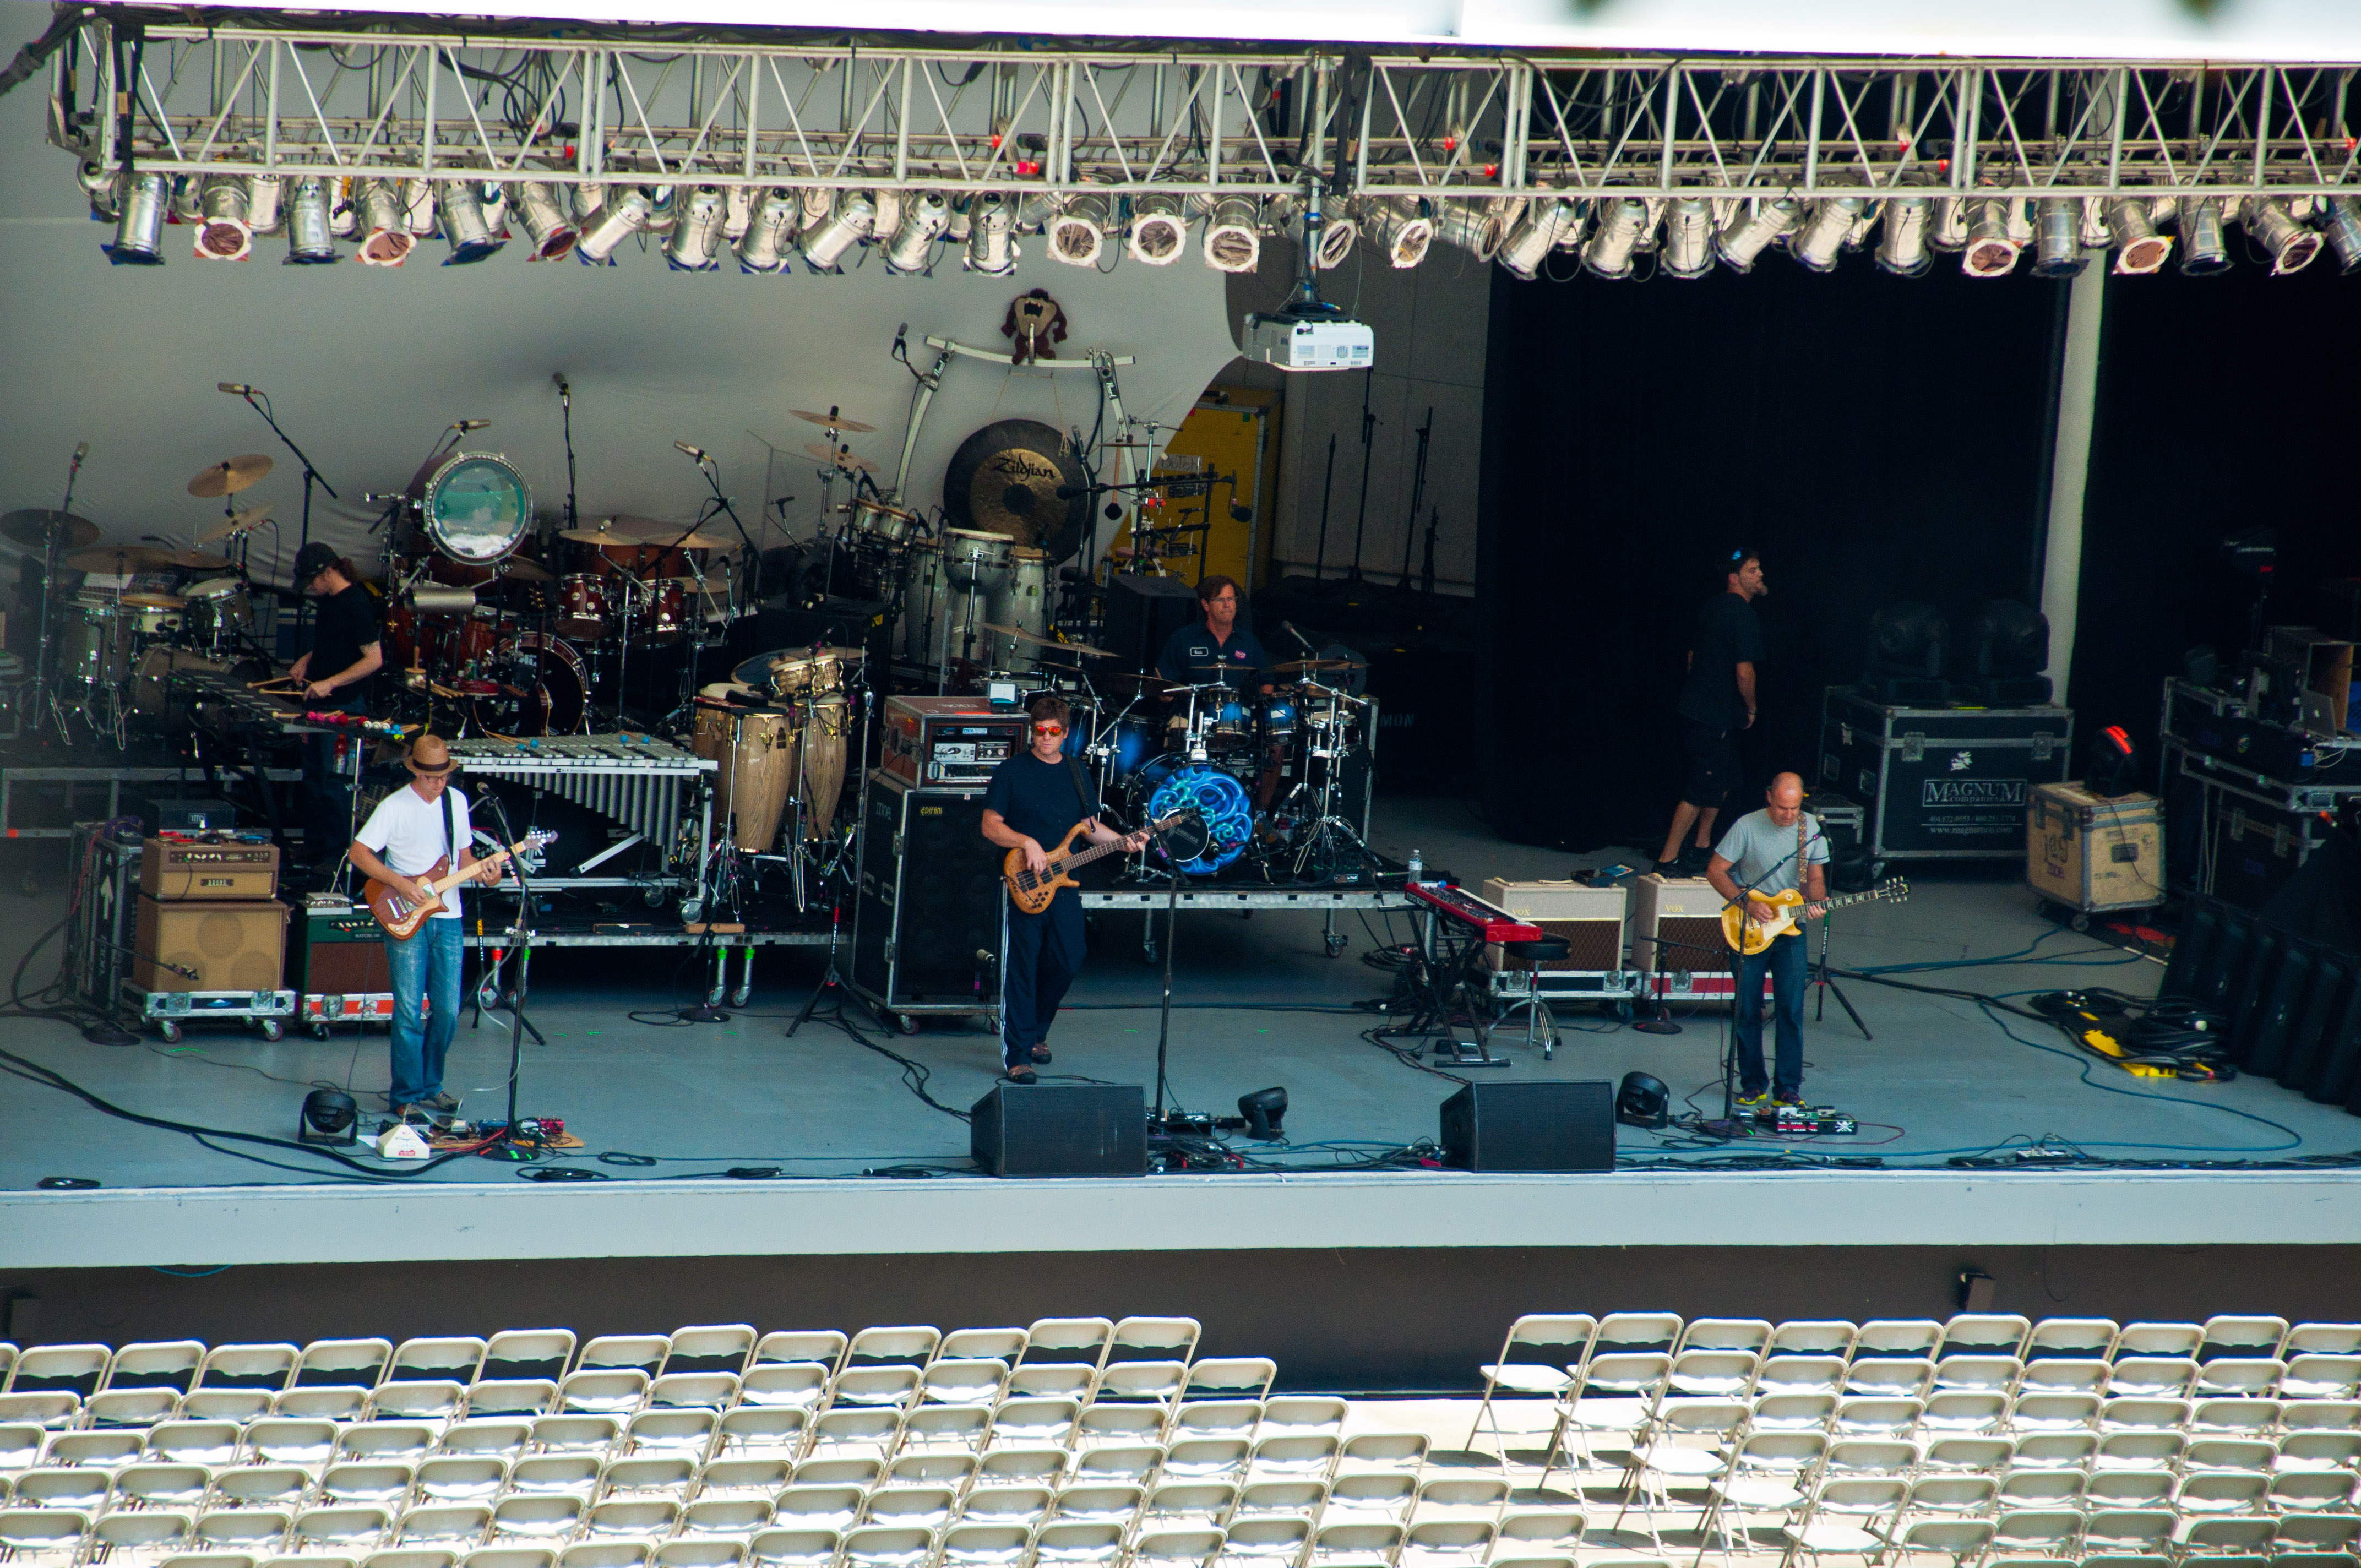 Moe. Sound Check in Chastain Park Amphitheater | The Chastain Park ...